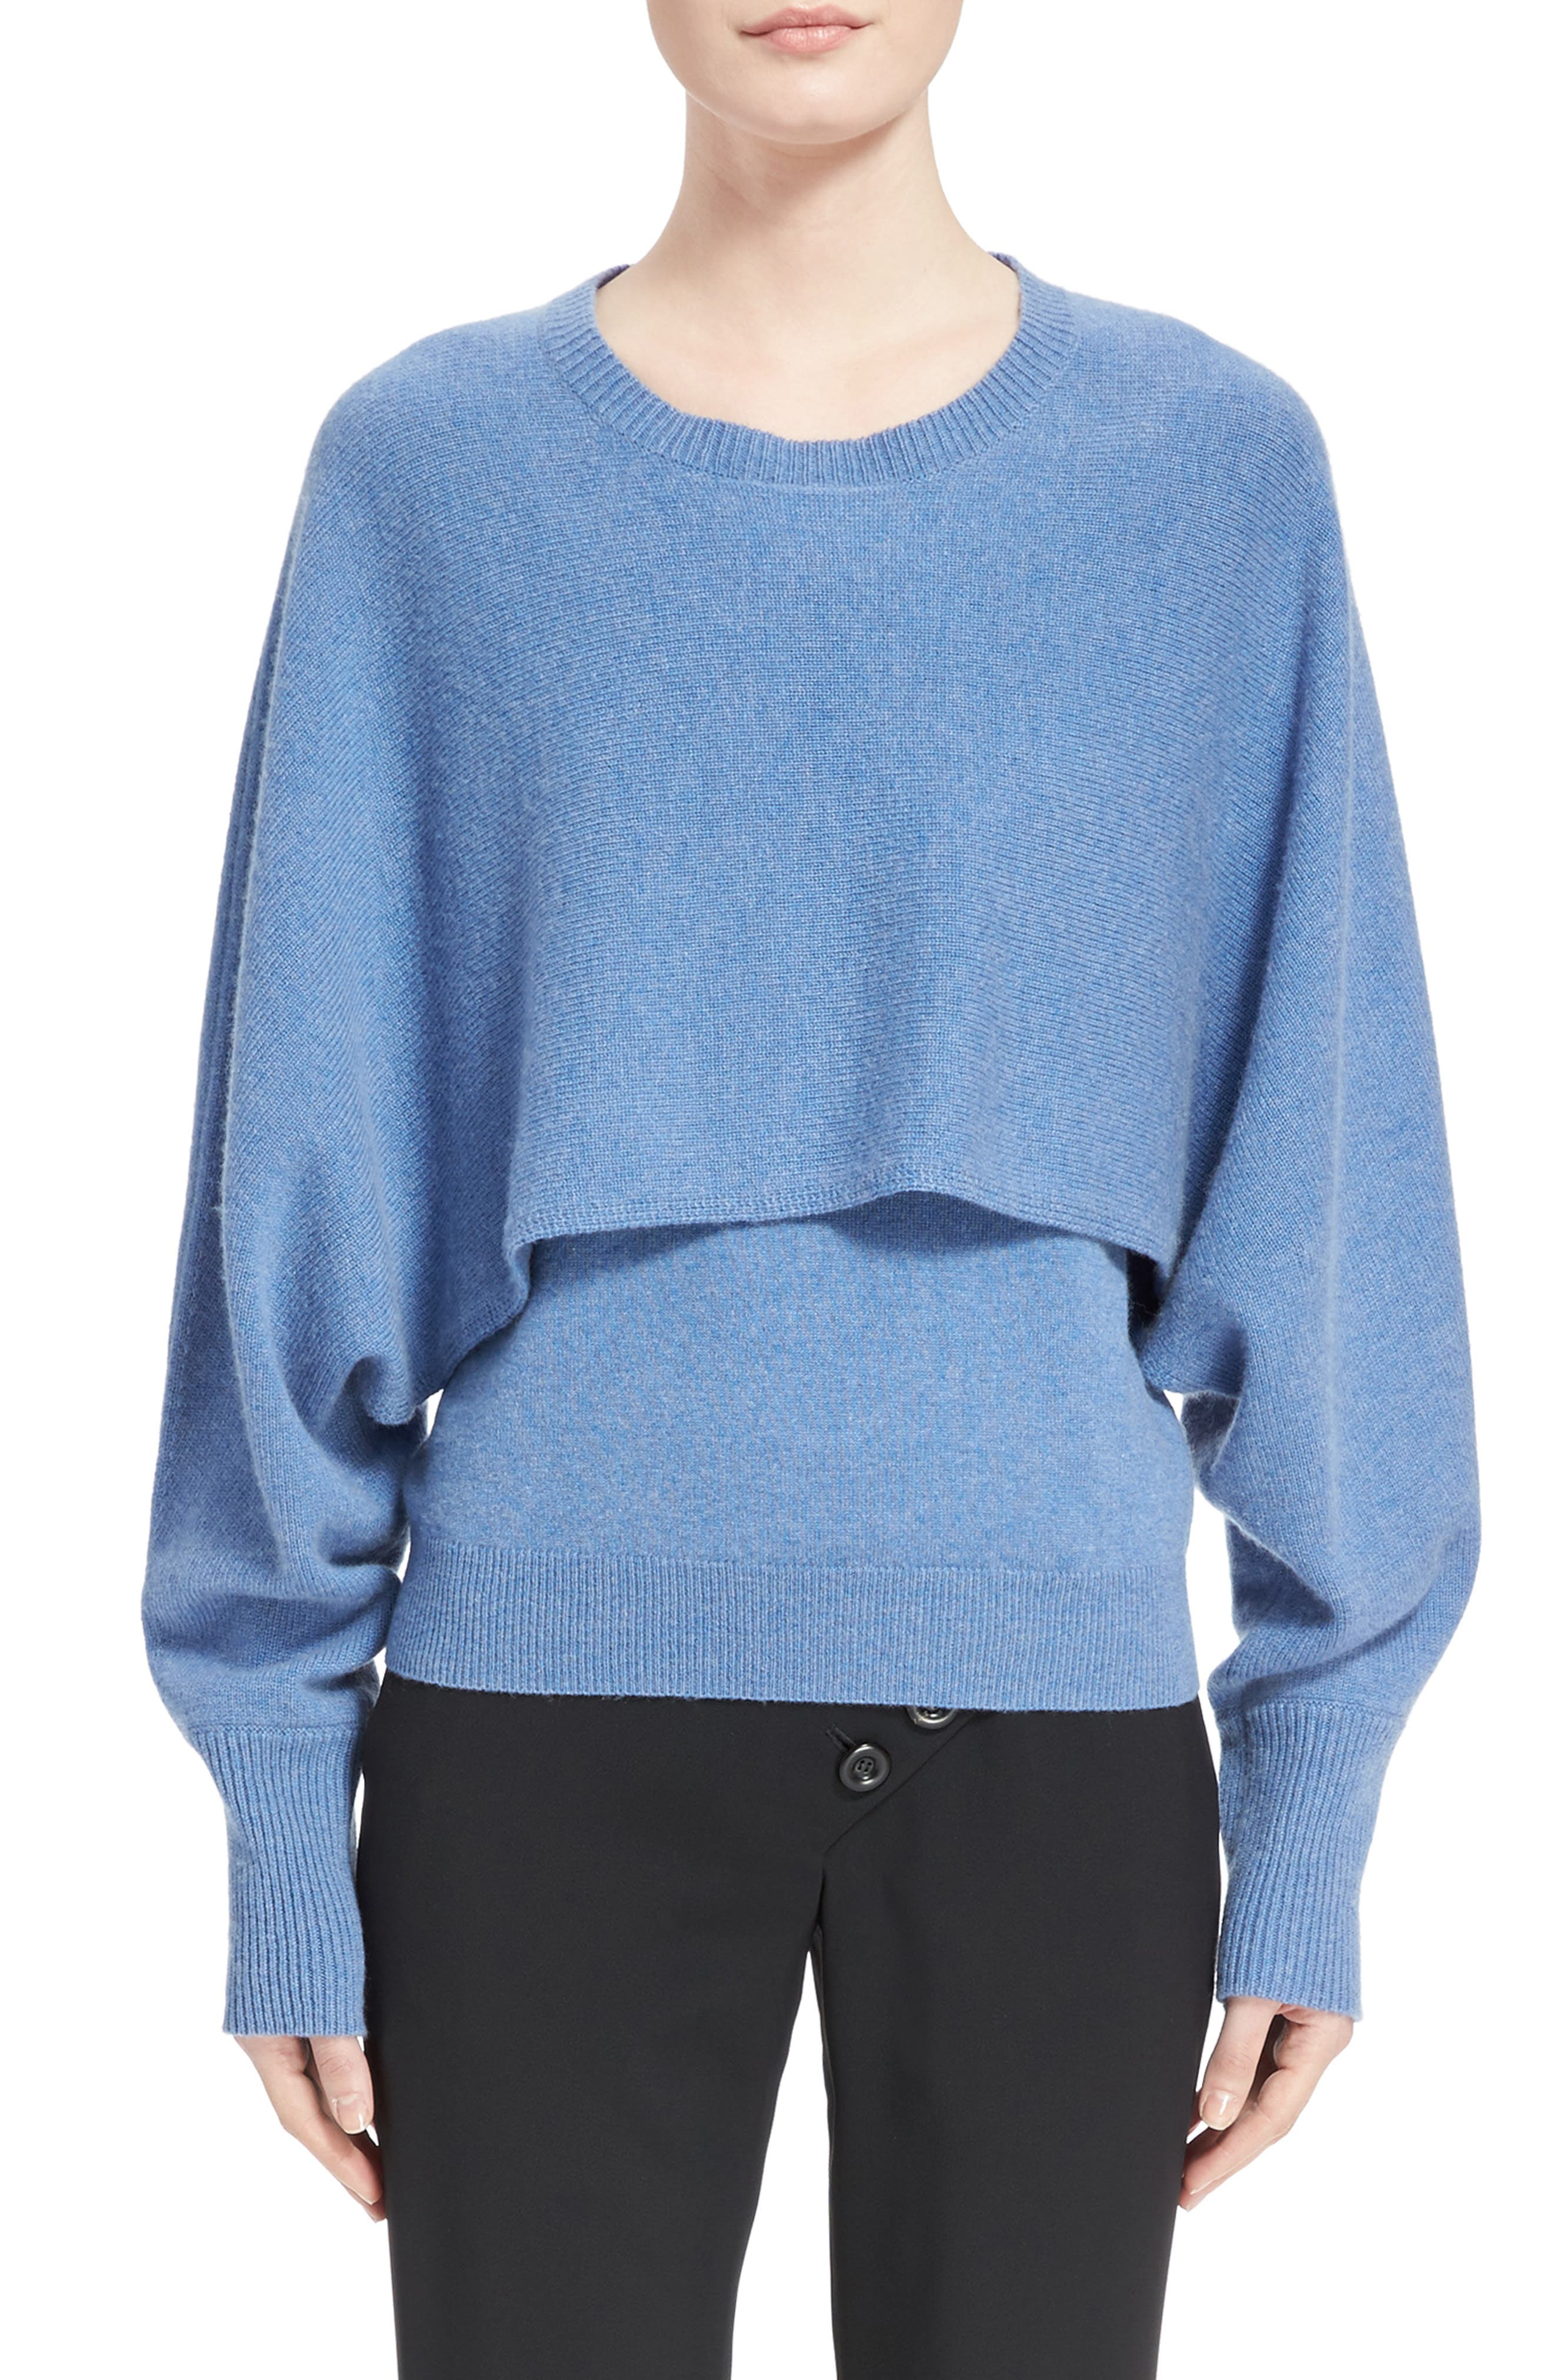 Chloé Layered Cashmere Tank & Sweater